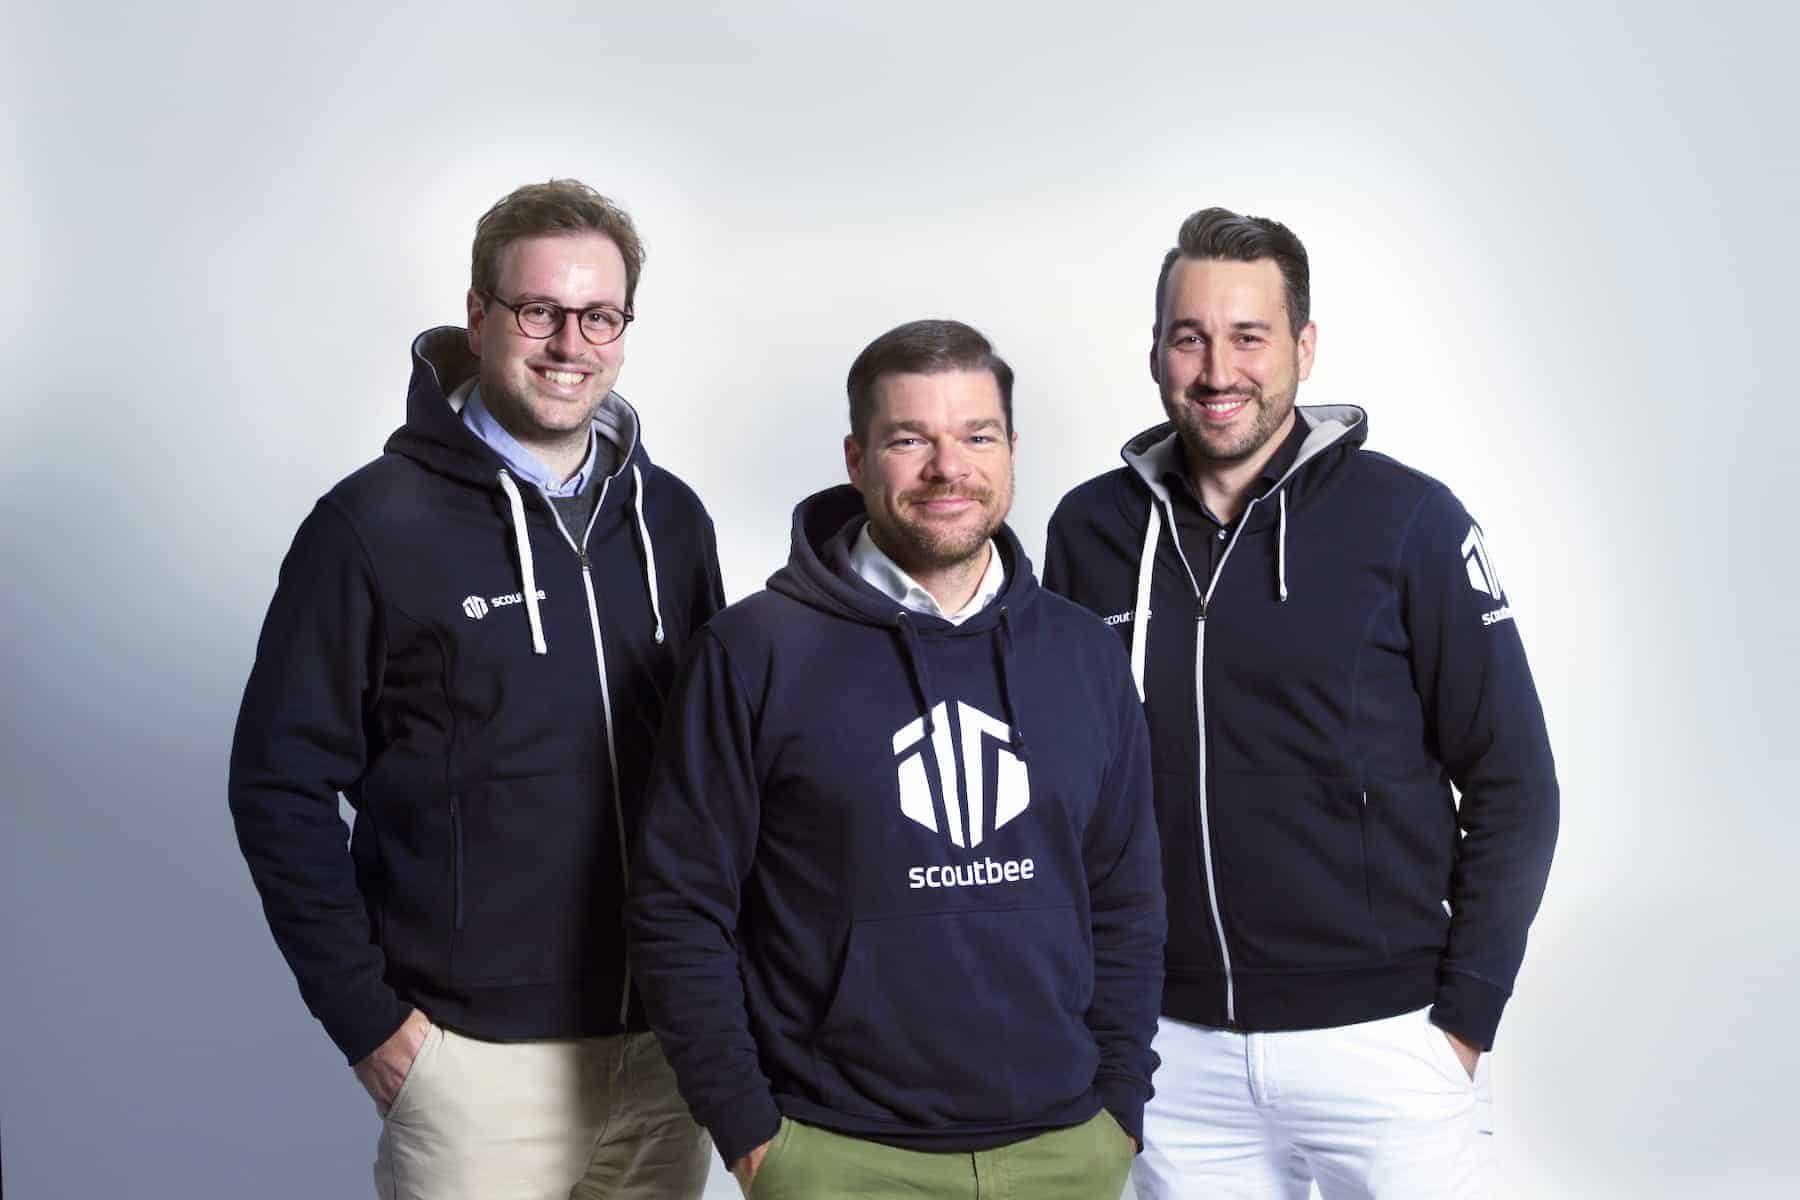 scoutbee raises $60M Series B investment - and a special thank you note!